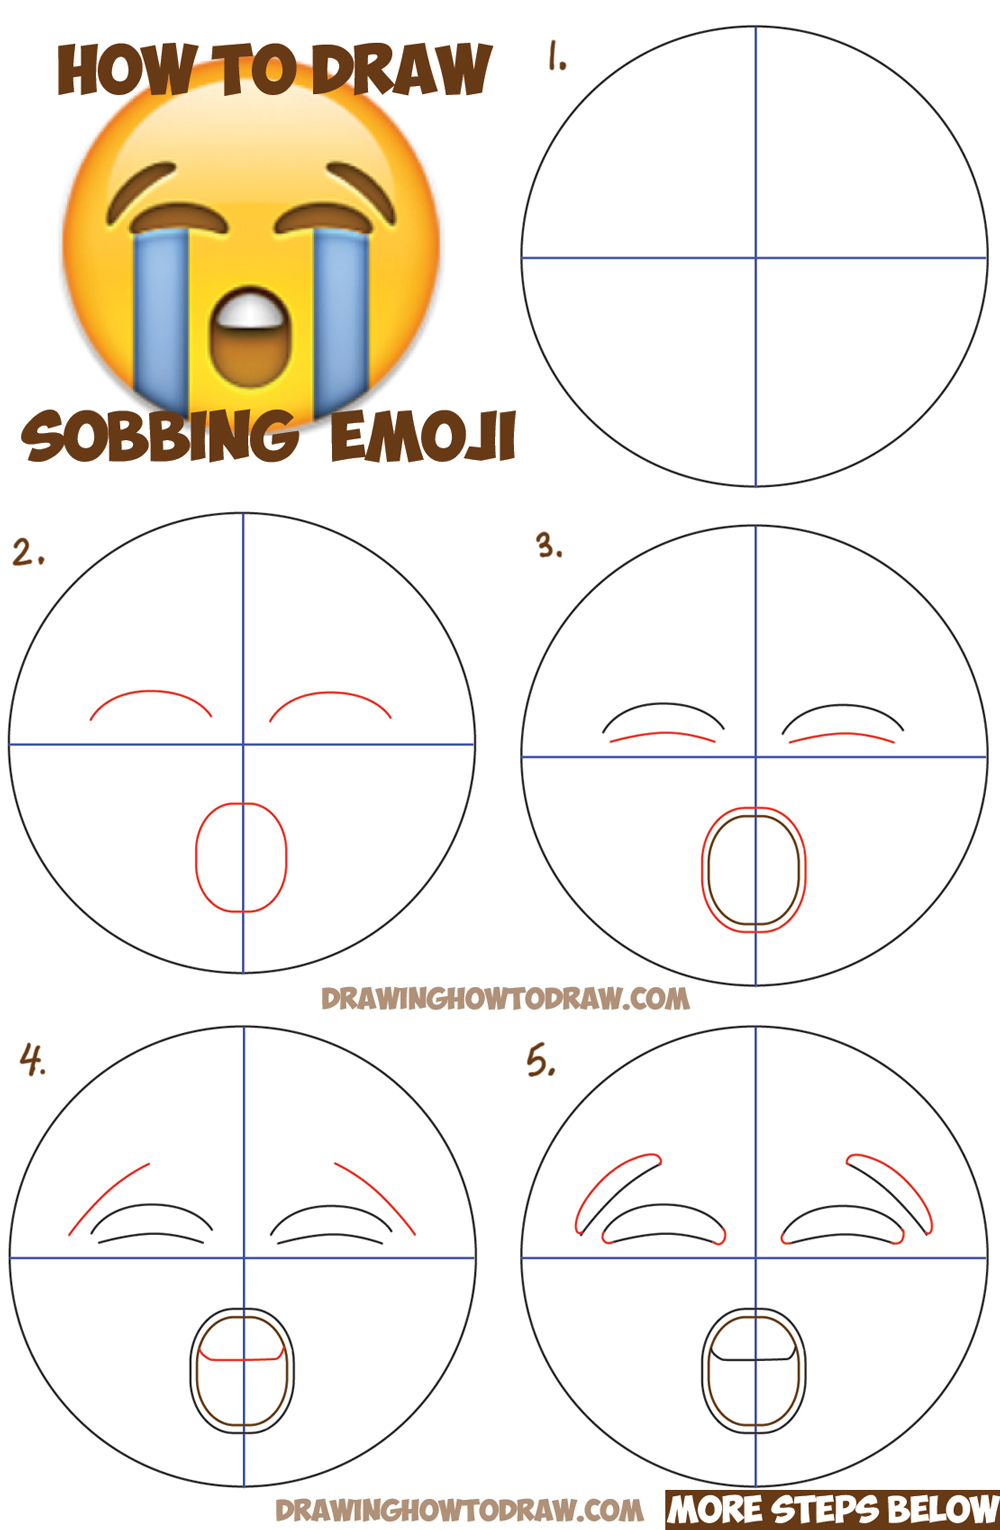 how to draw sobbing crying emoji face with easy steps